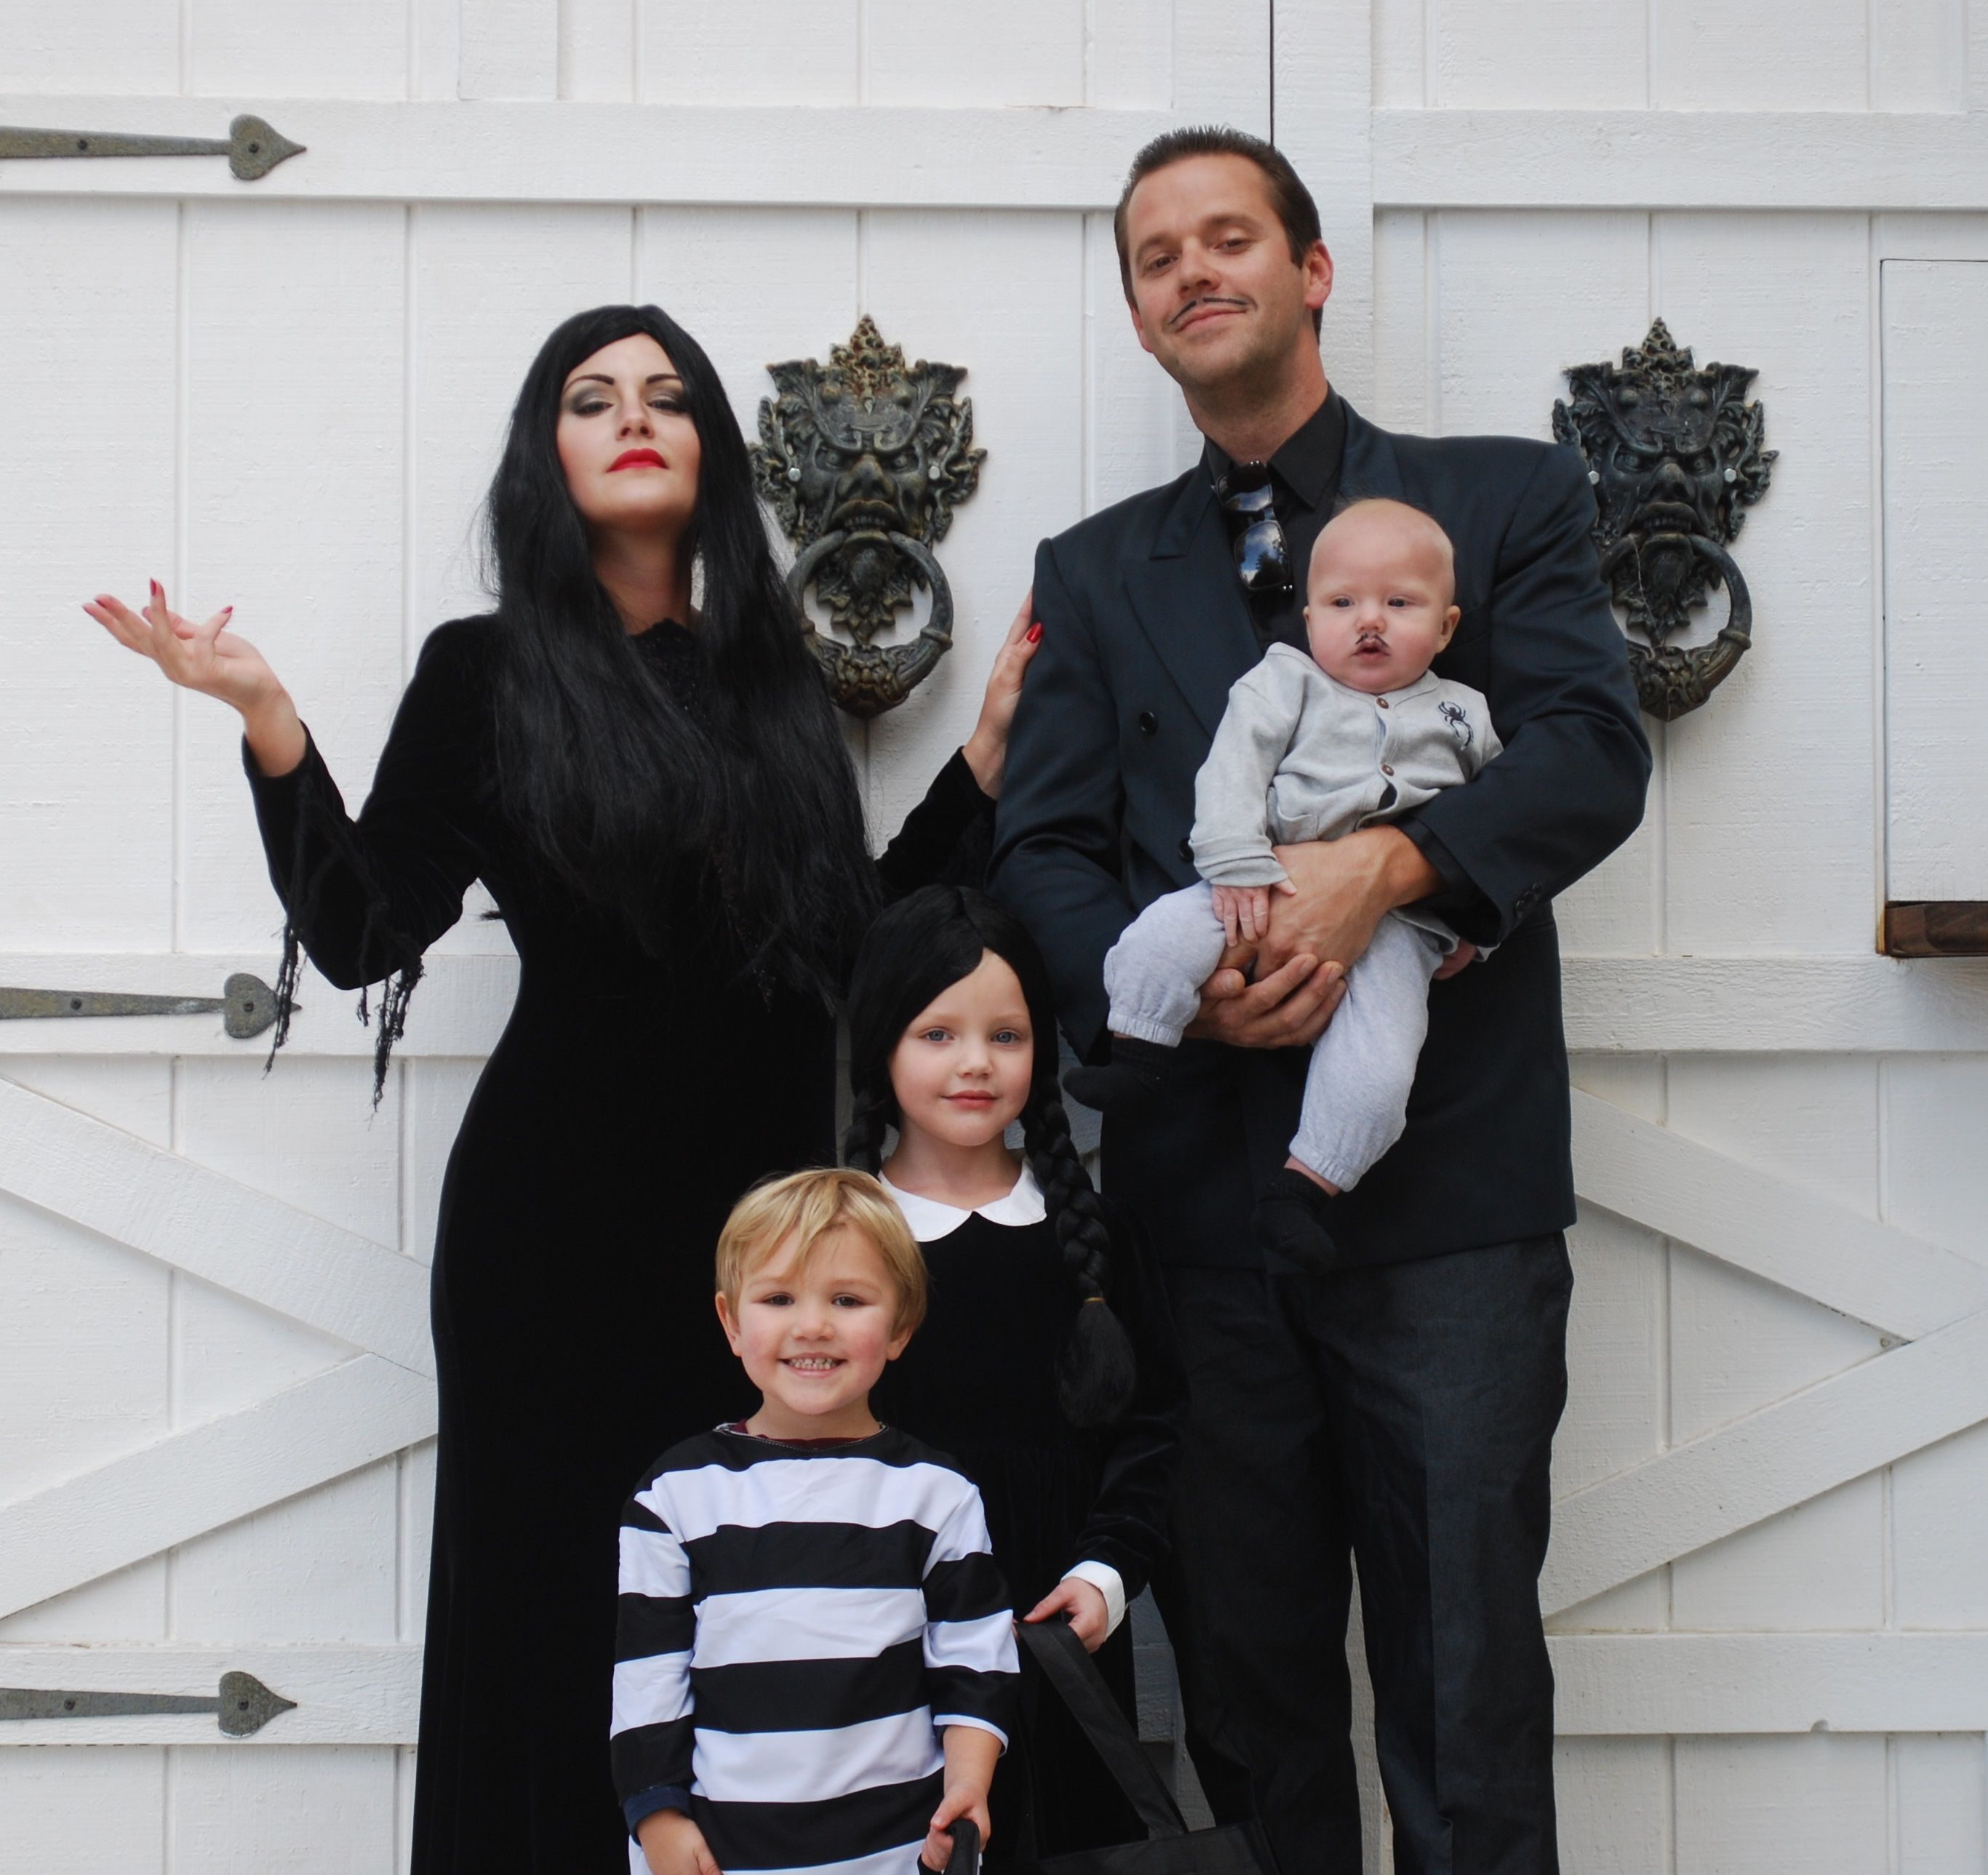 große Auswahl an Farben modische Muster neueste Kollektion addams family costume Morticia, Gomez Addams, Wednesday ...